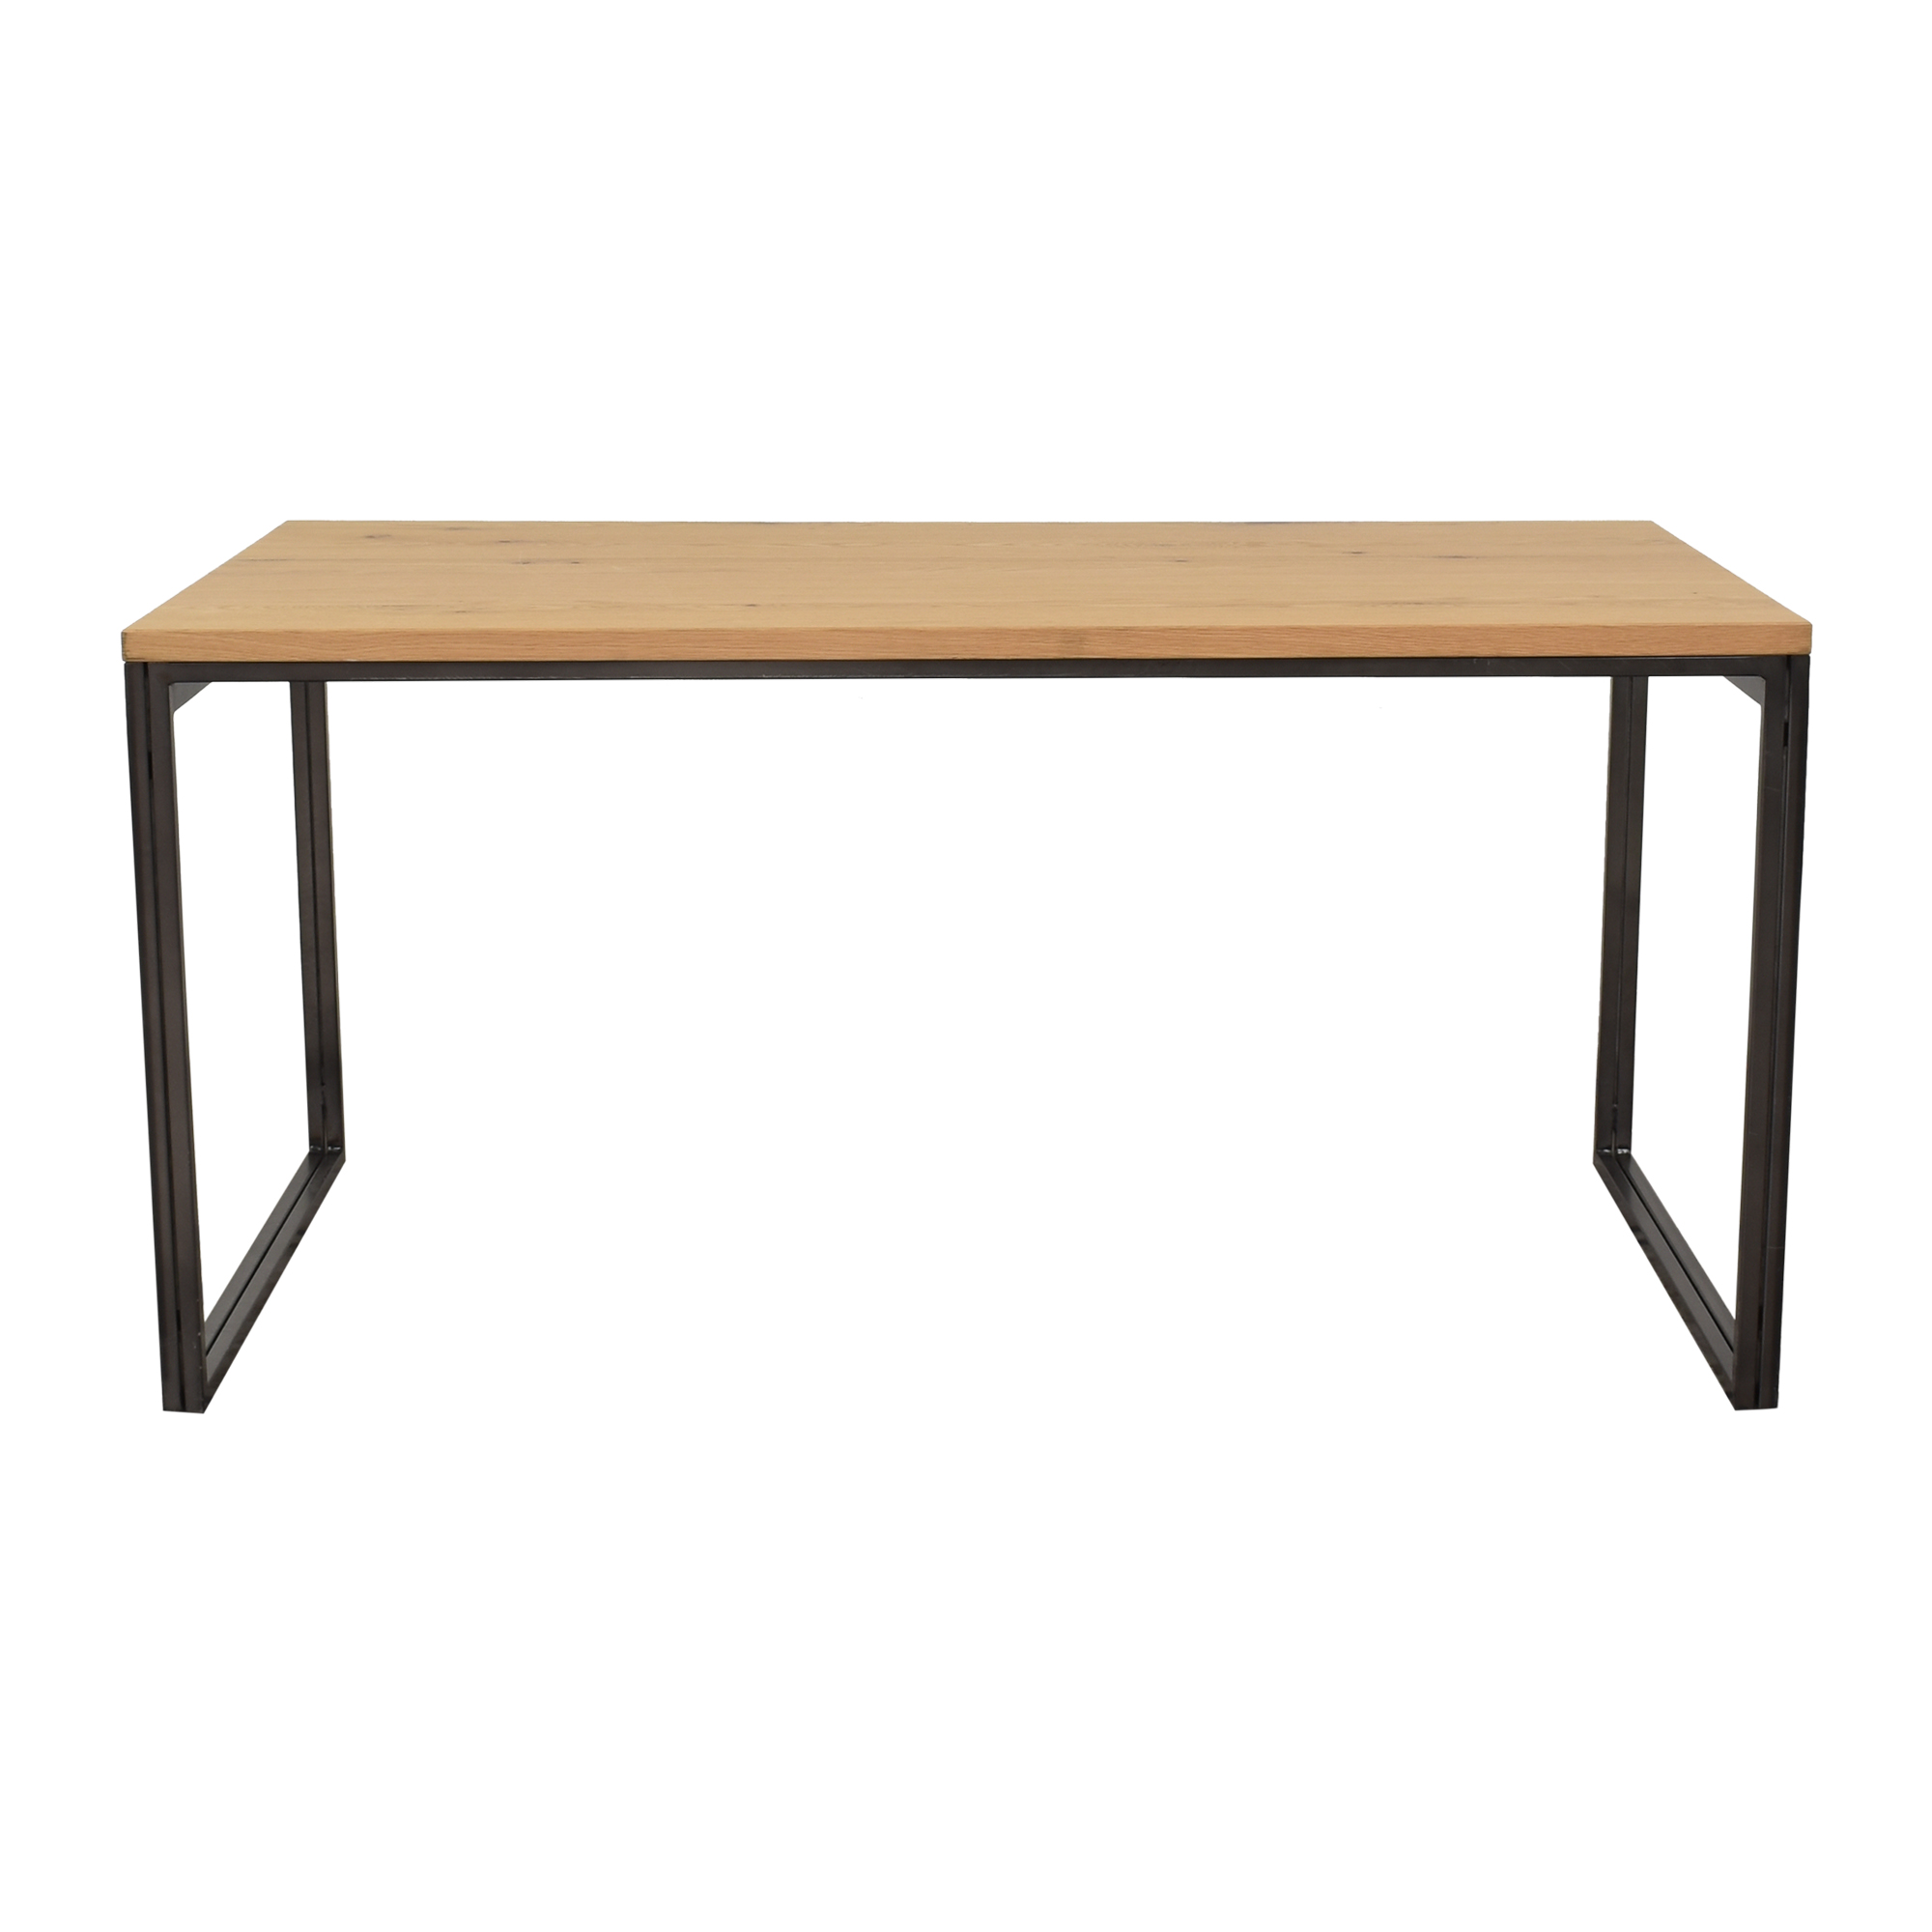 West Elm West Elm Work Greenpoint Fixed Desk used